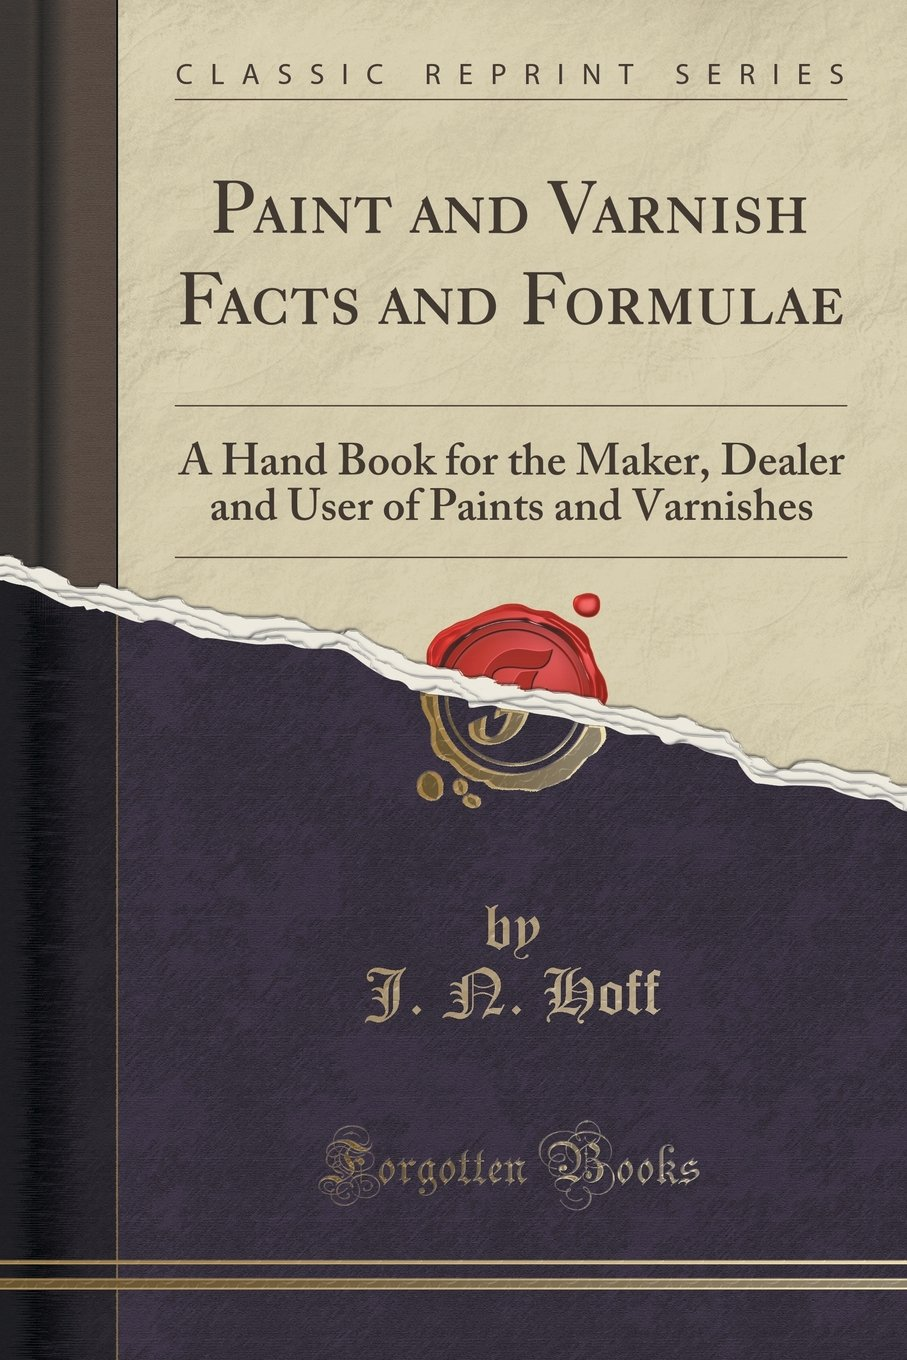 Read Online Paint and Varnish Facts and Formulae: A Hand Book for the Maker, Dealer and User of Paints and Varnishes (Classic Reprint) PDF